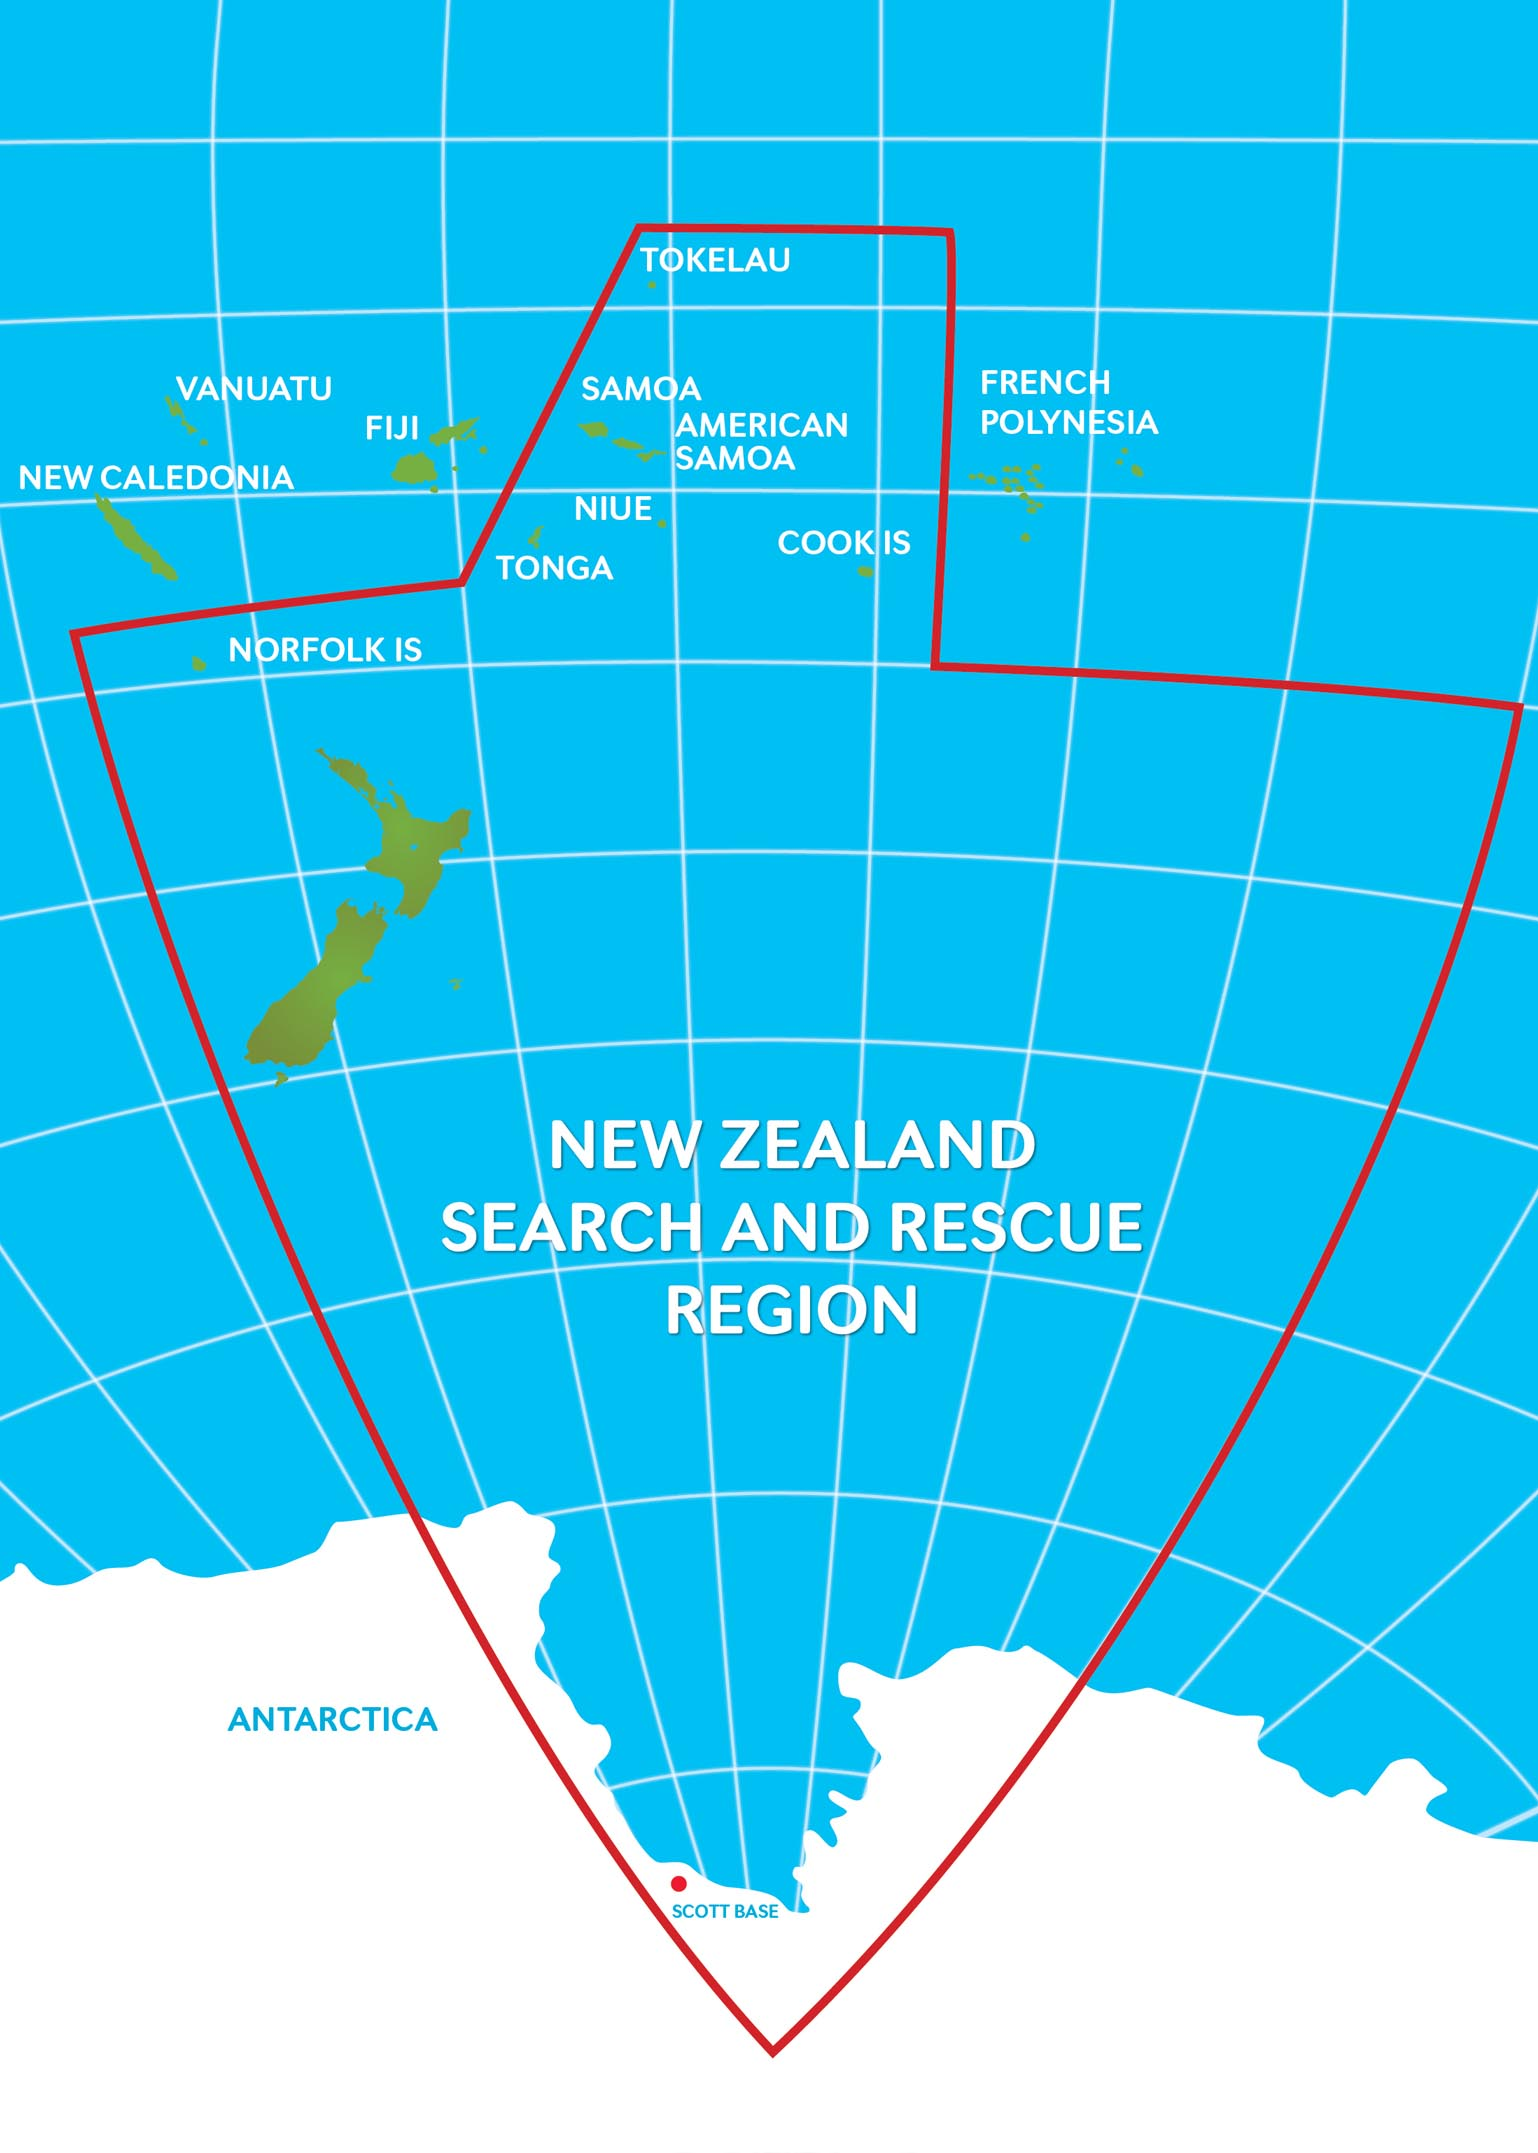 RCCNZ's search and rescue area extends from the mid-Tasman Sea, halfway to Chile, and from the South Pole, almost up to the Equator.